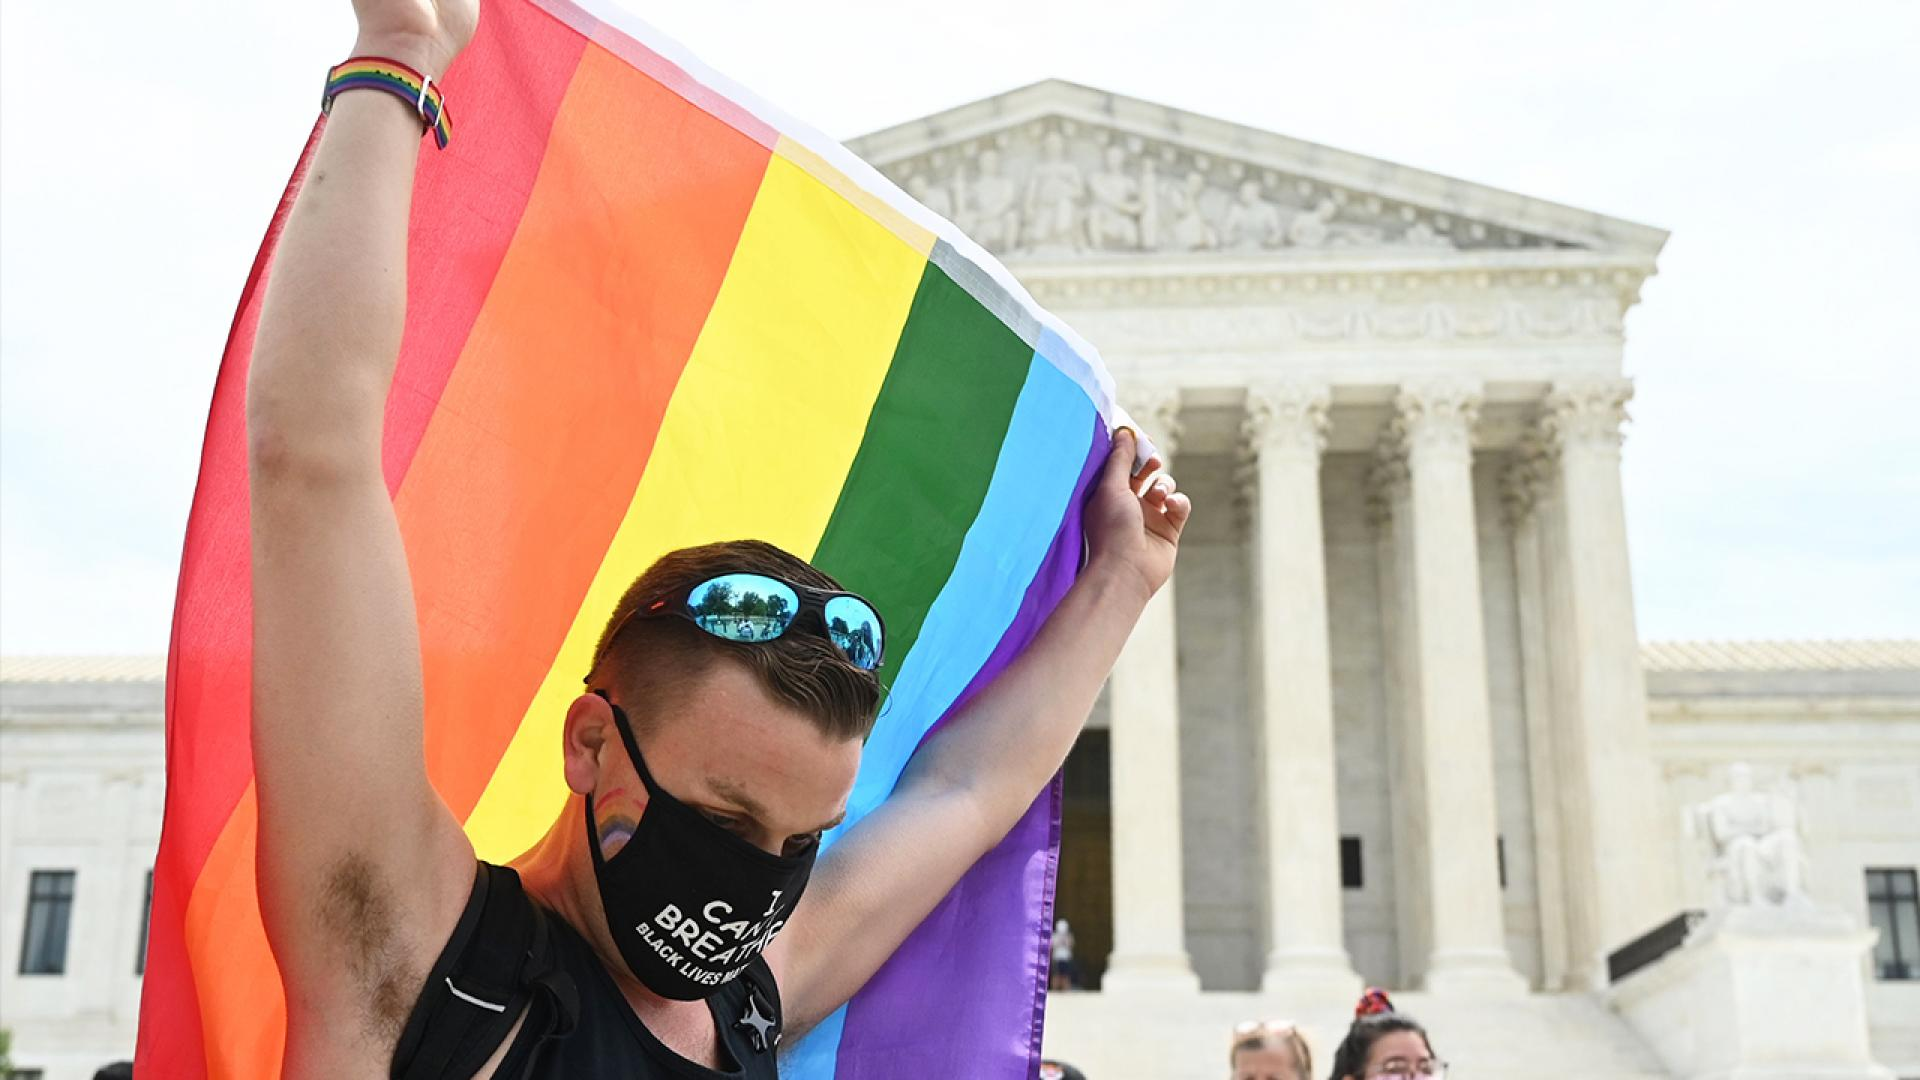 A man waves a rainbow flag in front of the U.S. Supreme Court in light of the ruling.